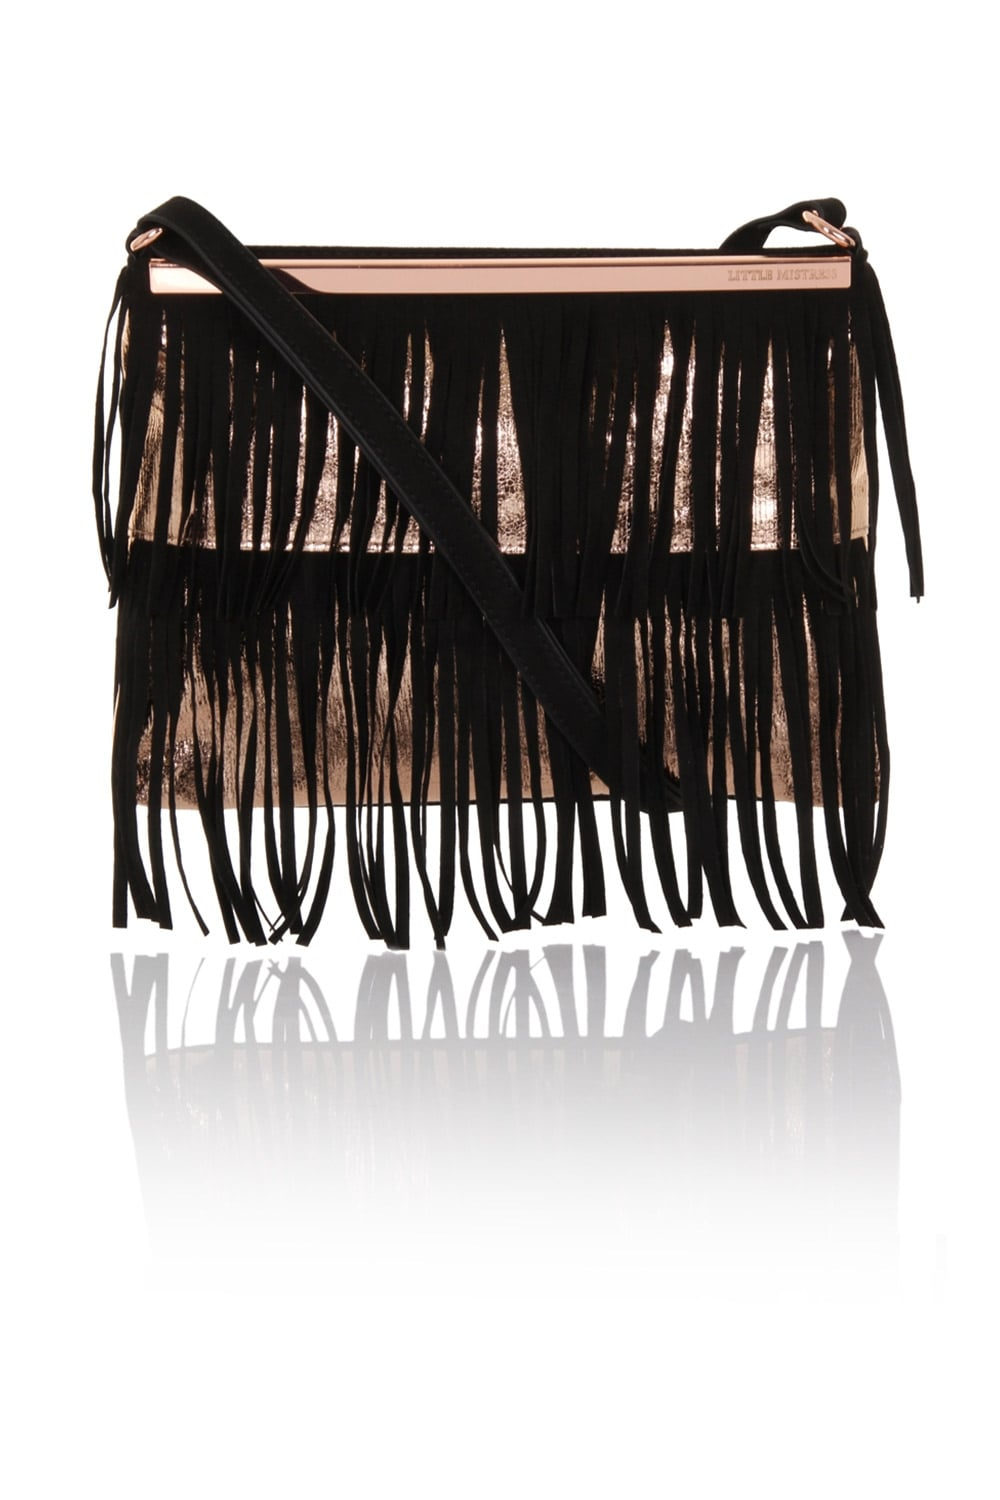 Little Mistress Handbags Fringe Metallic Crossbody Bag